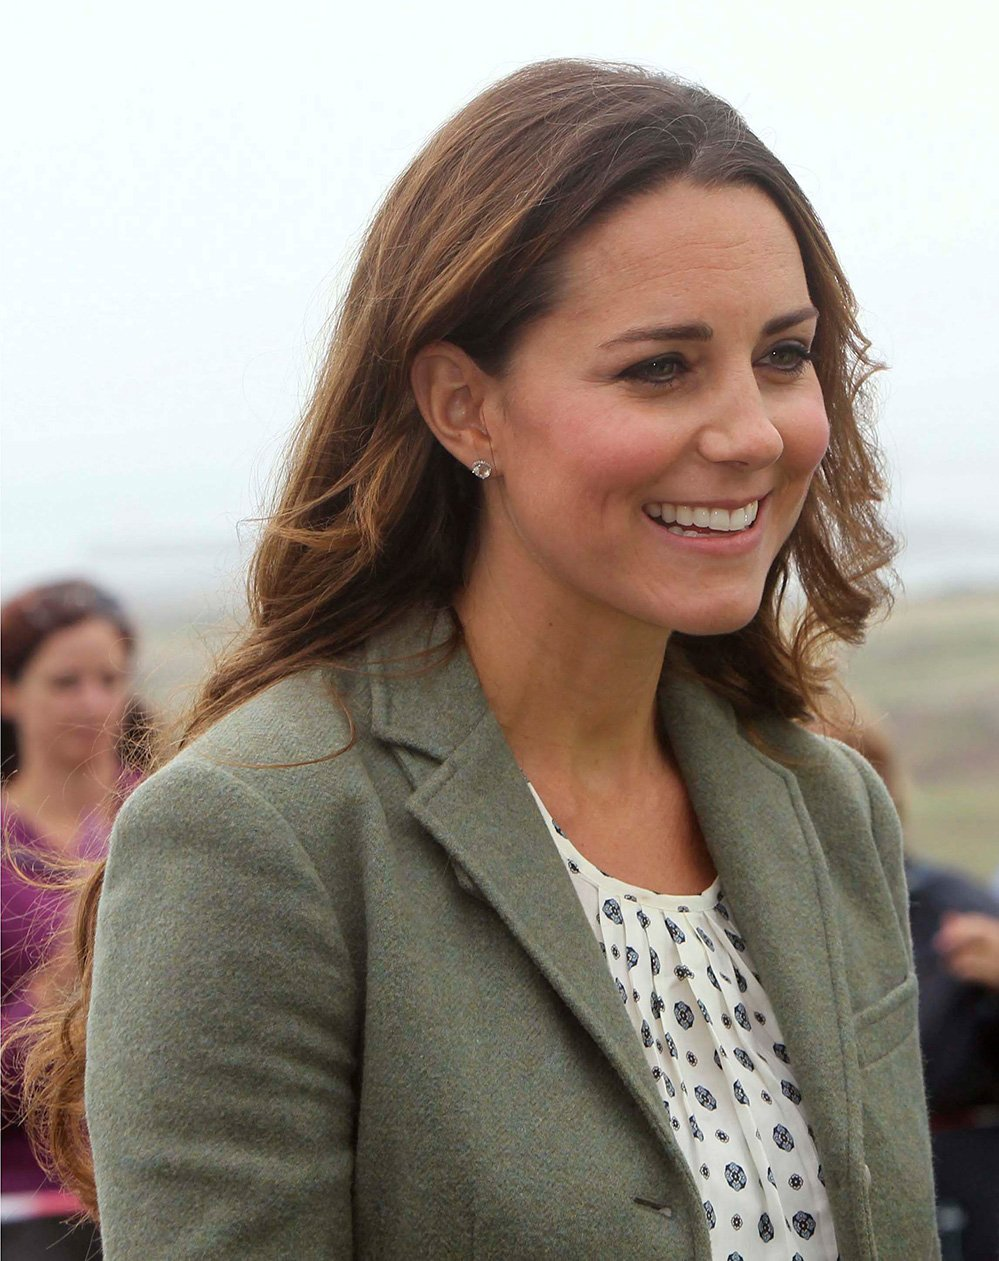 Reaparición espectacular de Kate Middleton - Fotos